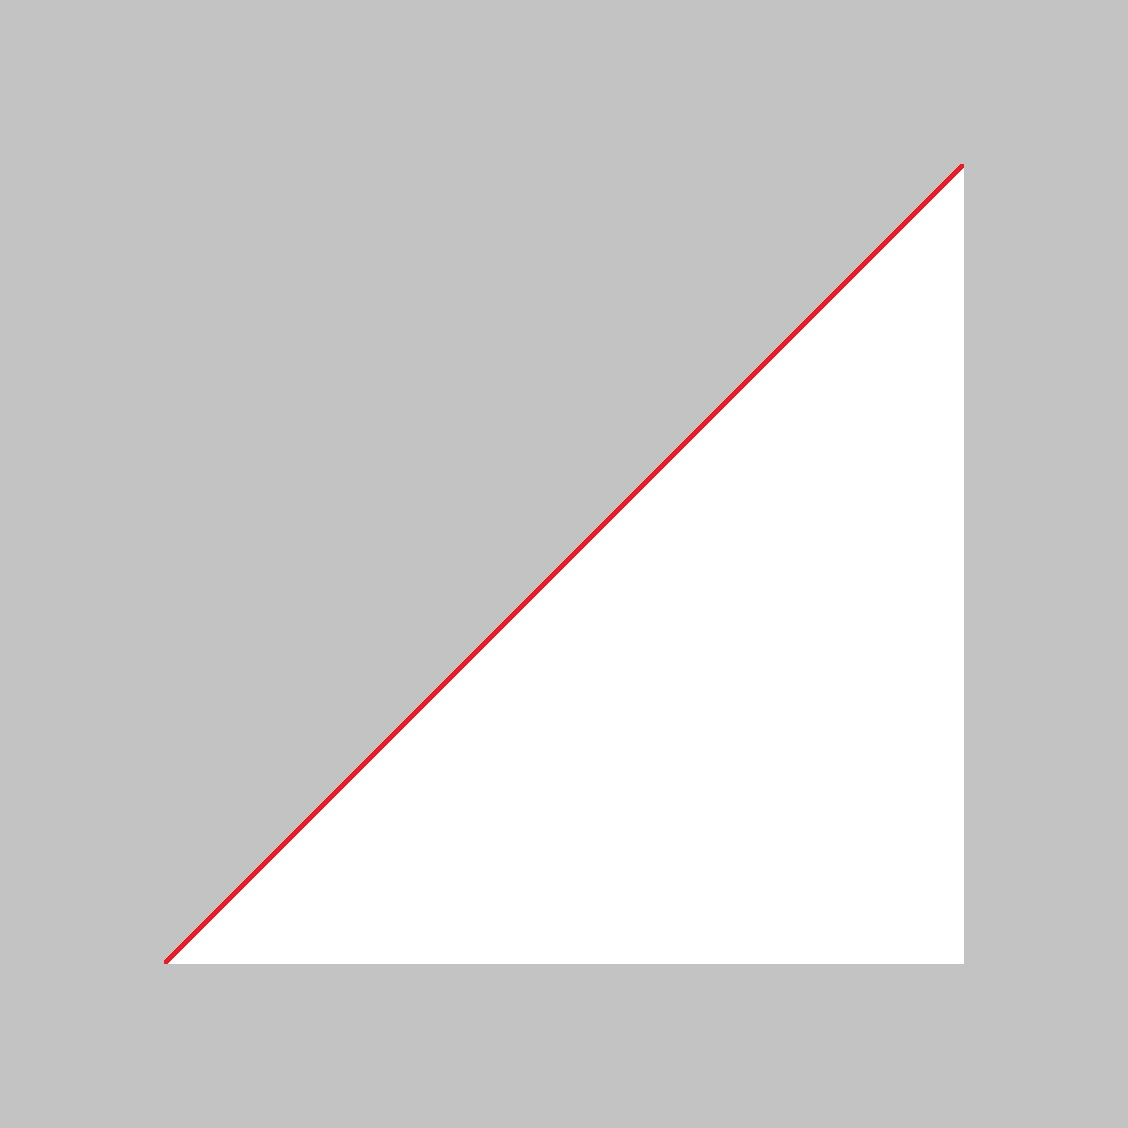 L'hypoténuse d'un triangle rectangle isocèle de côté 1 vaut √2